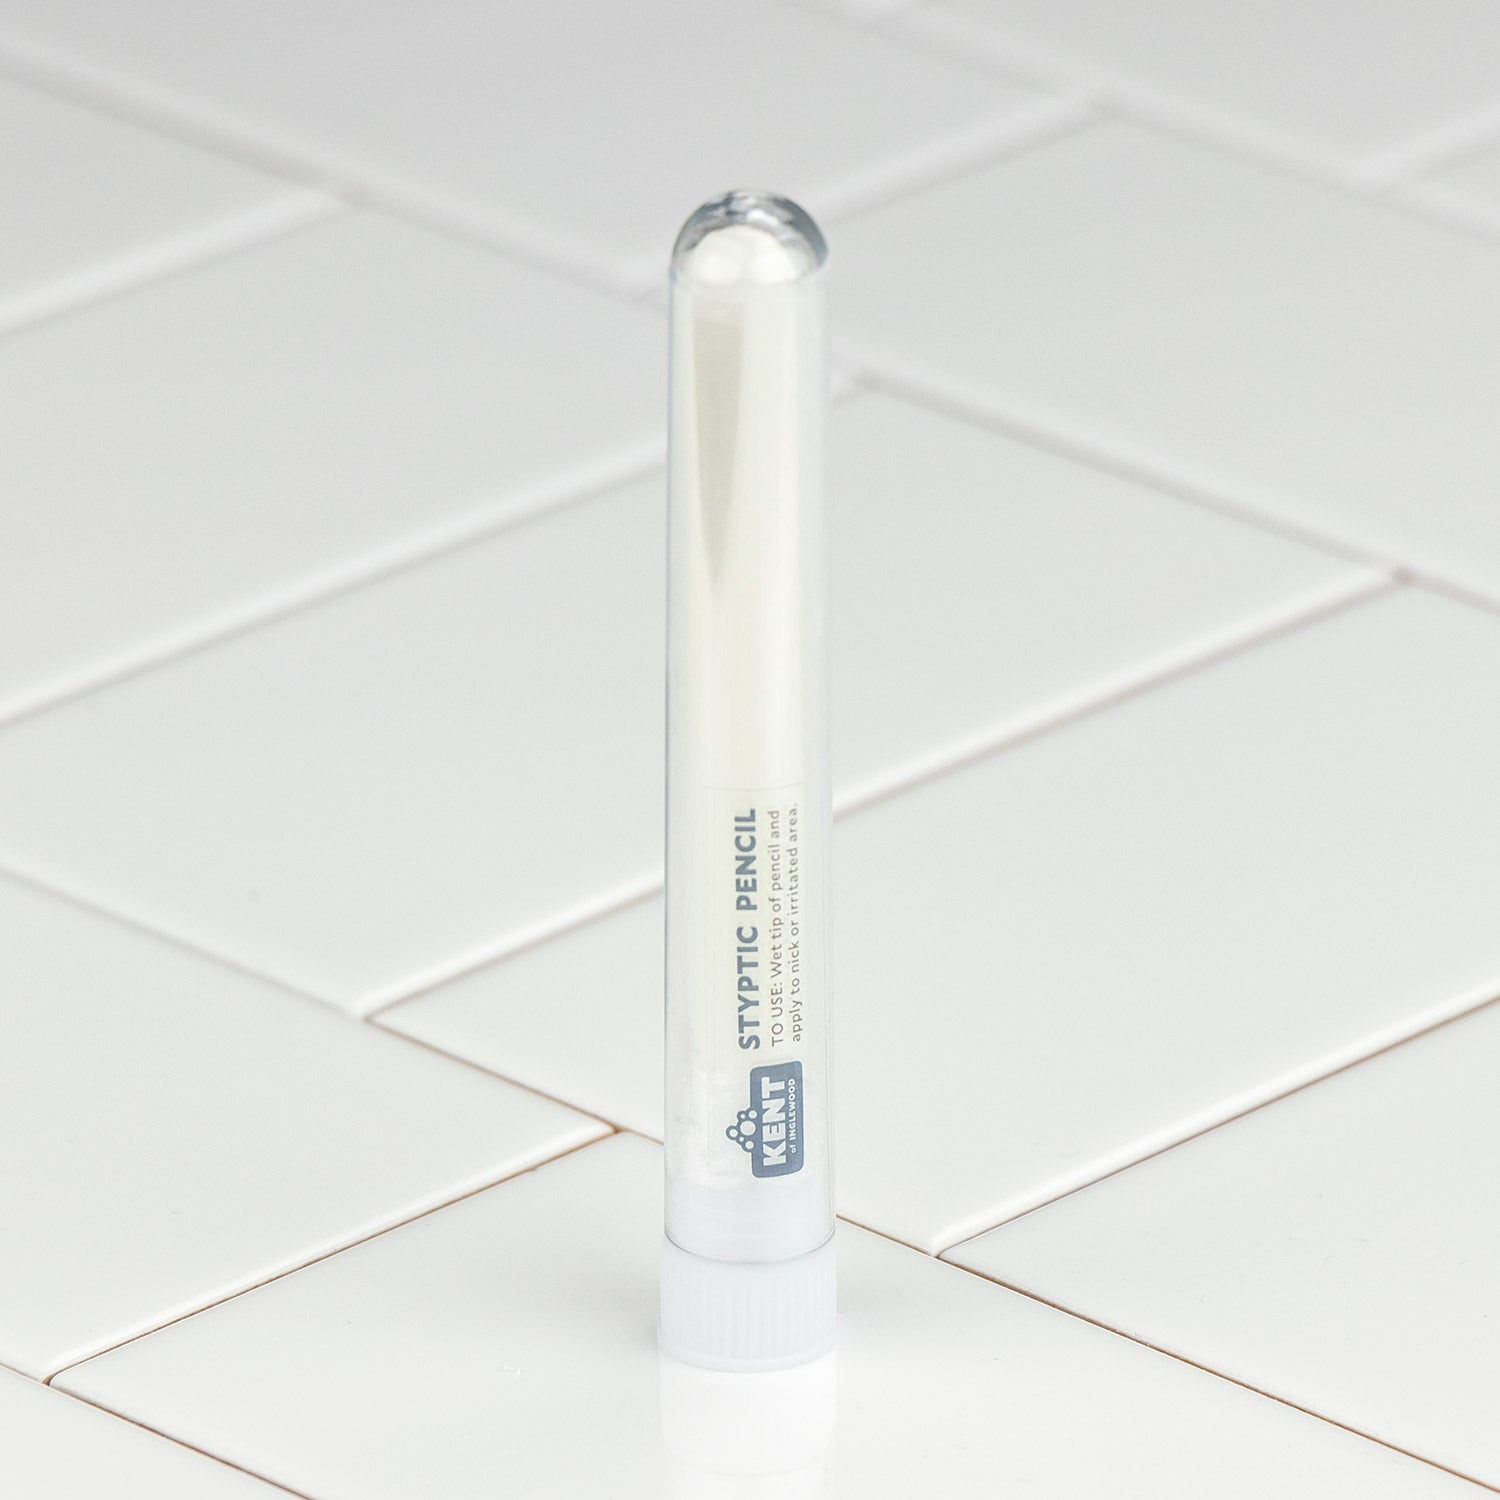 Kent of Inglewood Aluminum Sulphate Styptic Pencil